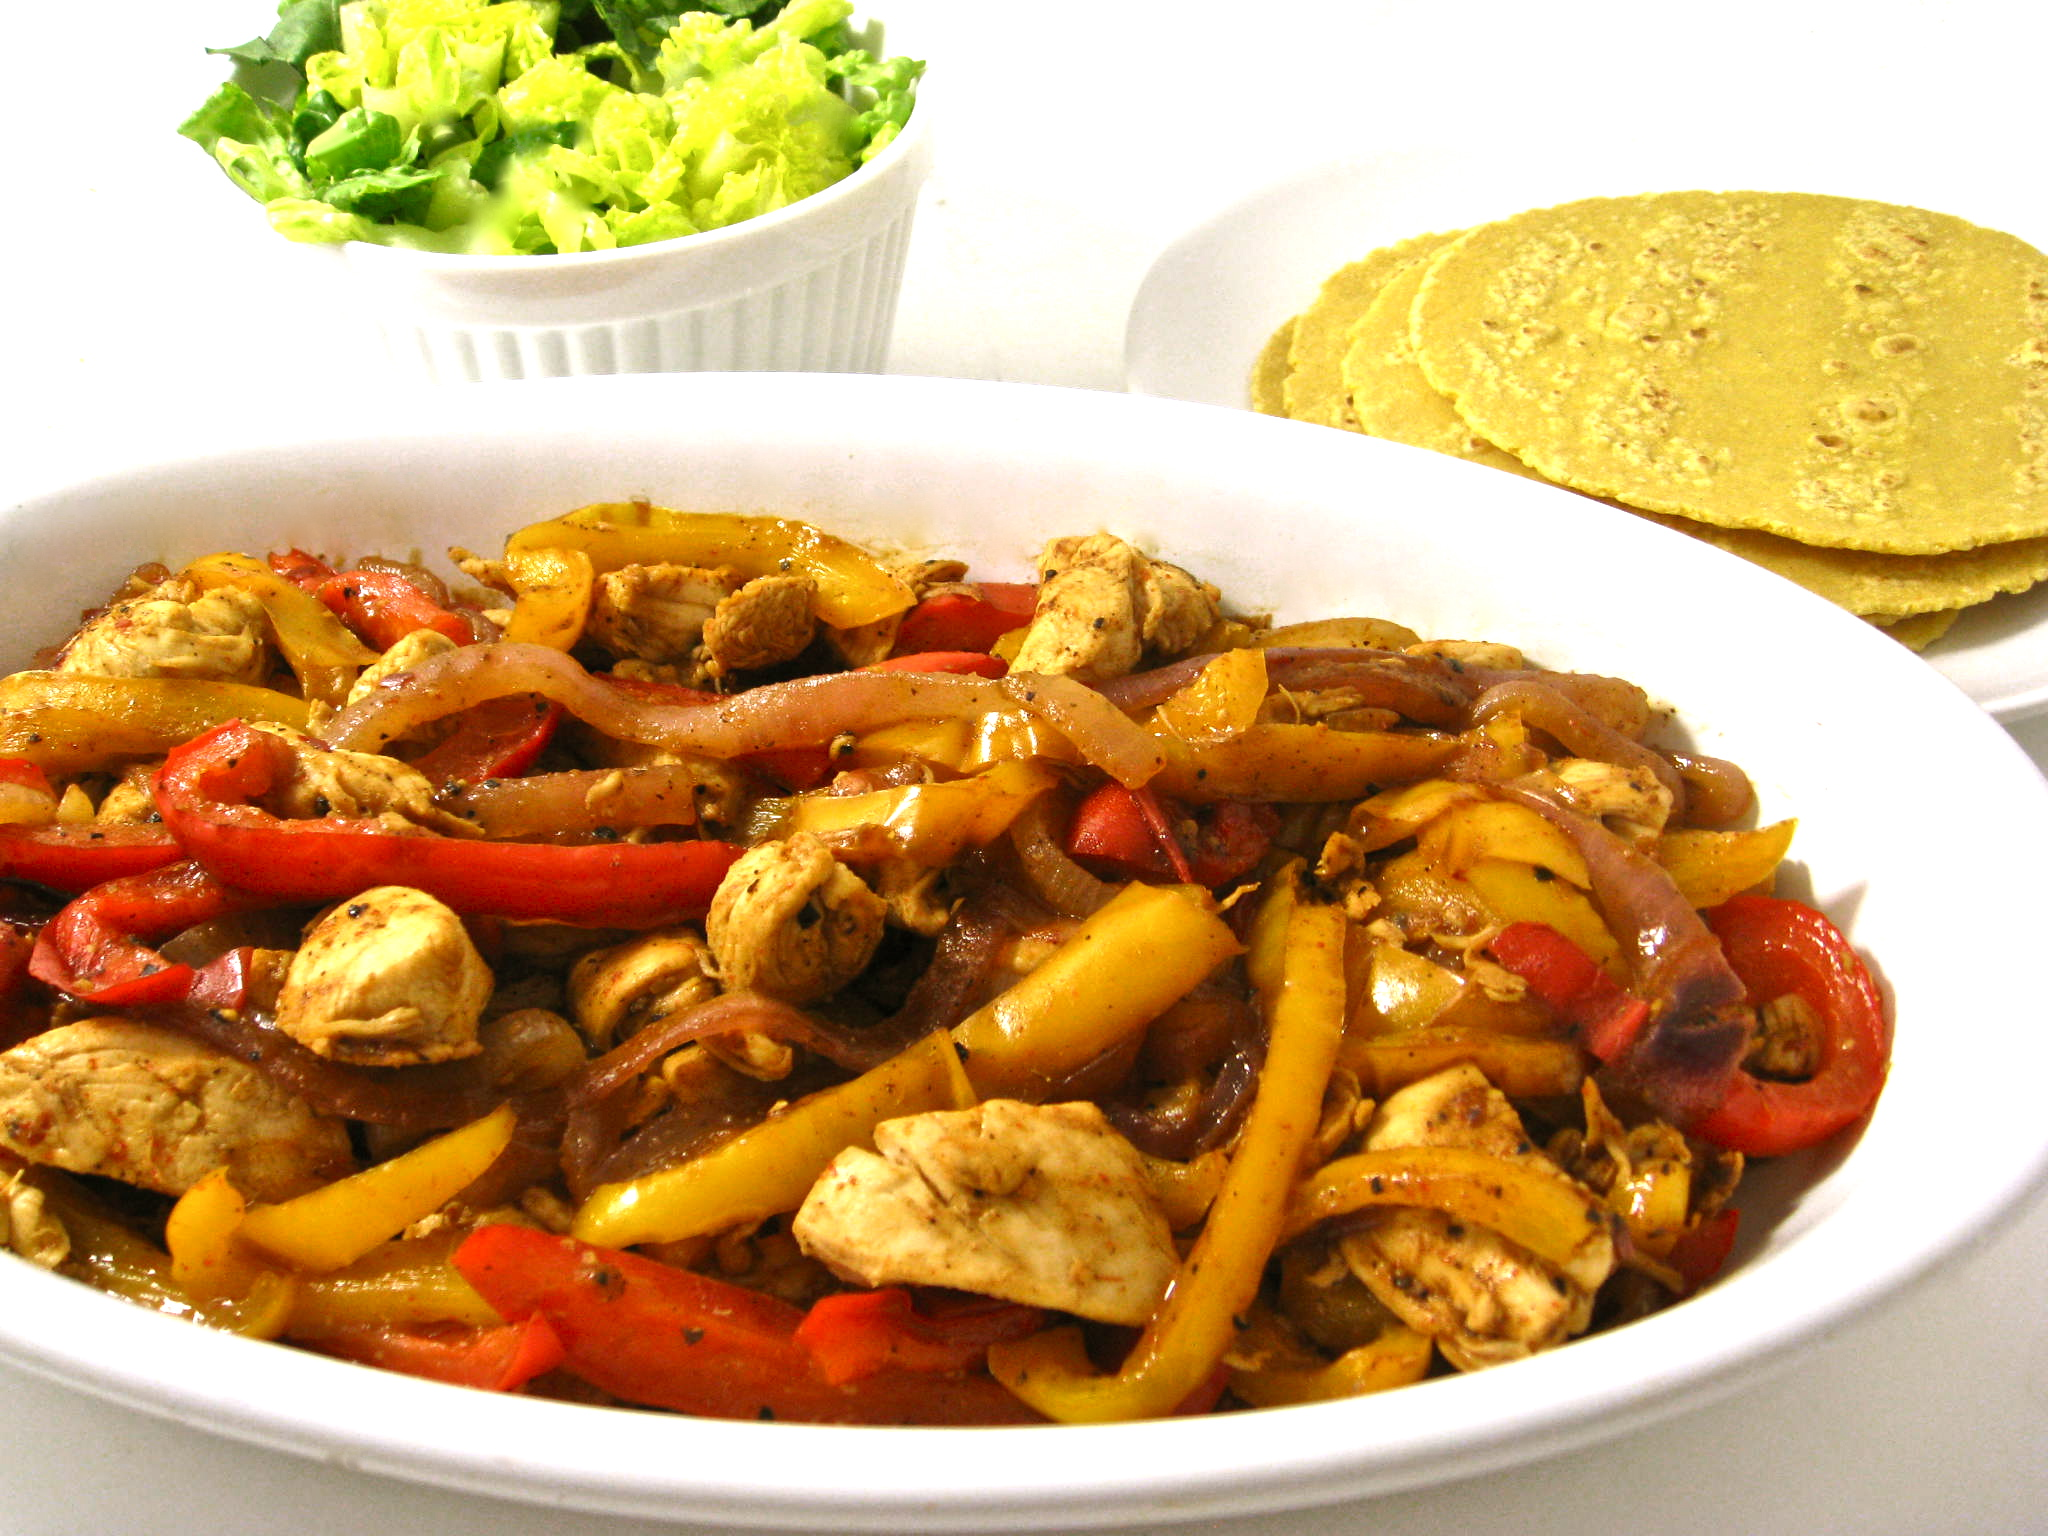 Mexican Chicken Fajitas I love fajitas, especially